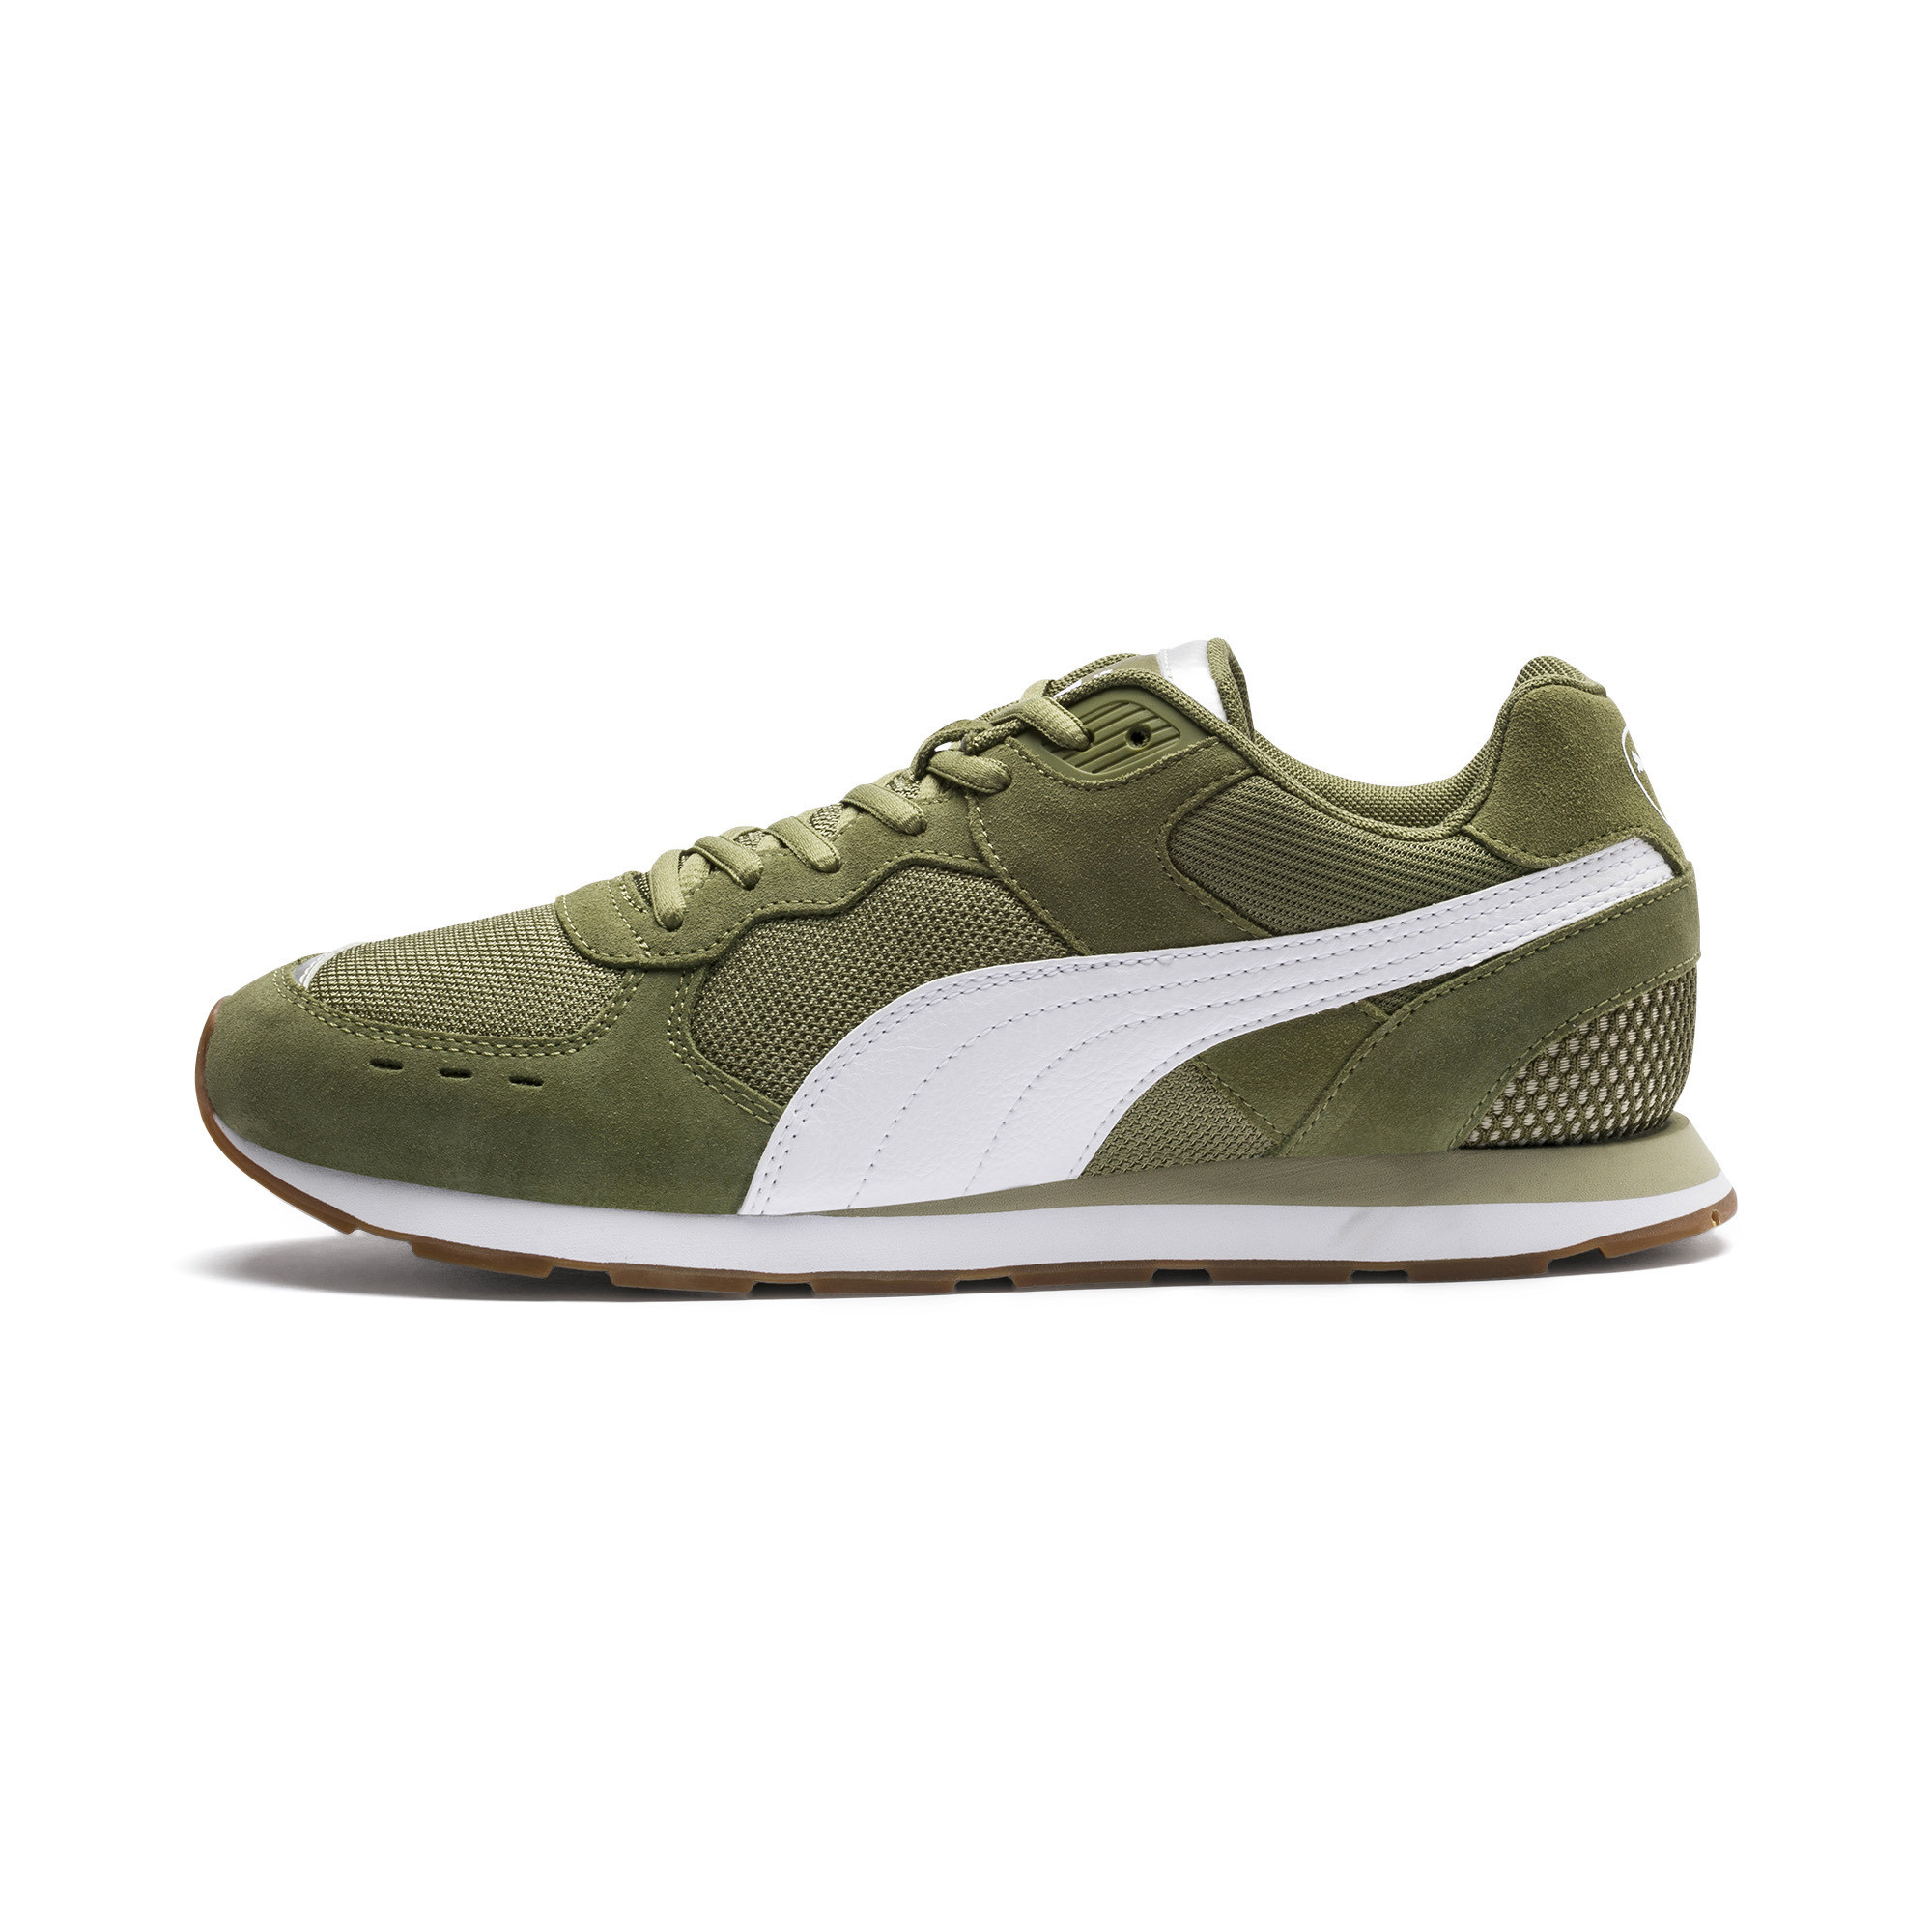 PUMA-Men-039-s-Vista-Sneakers thumbnail 26